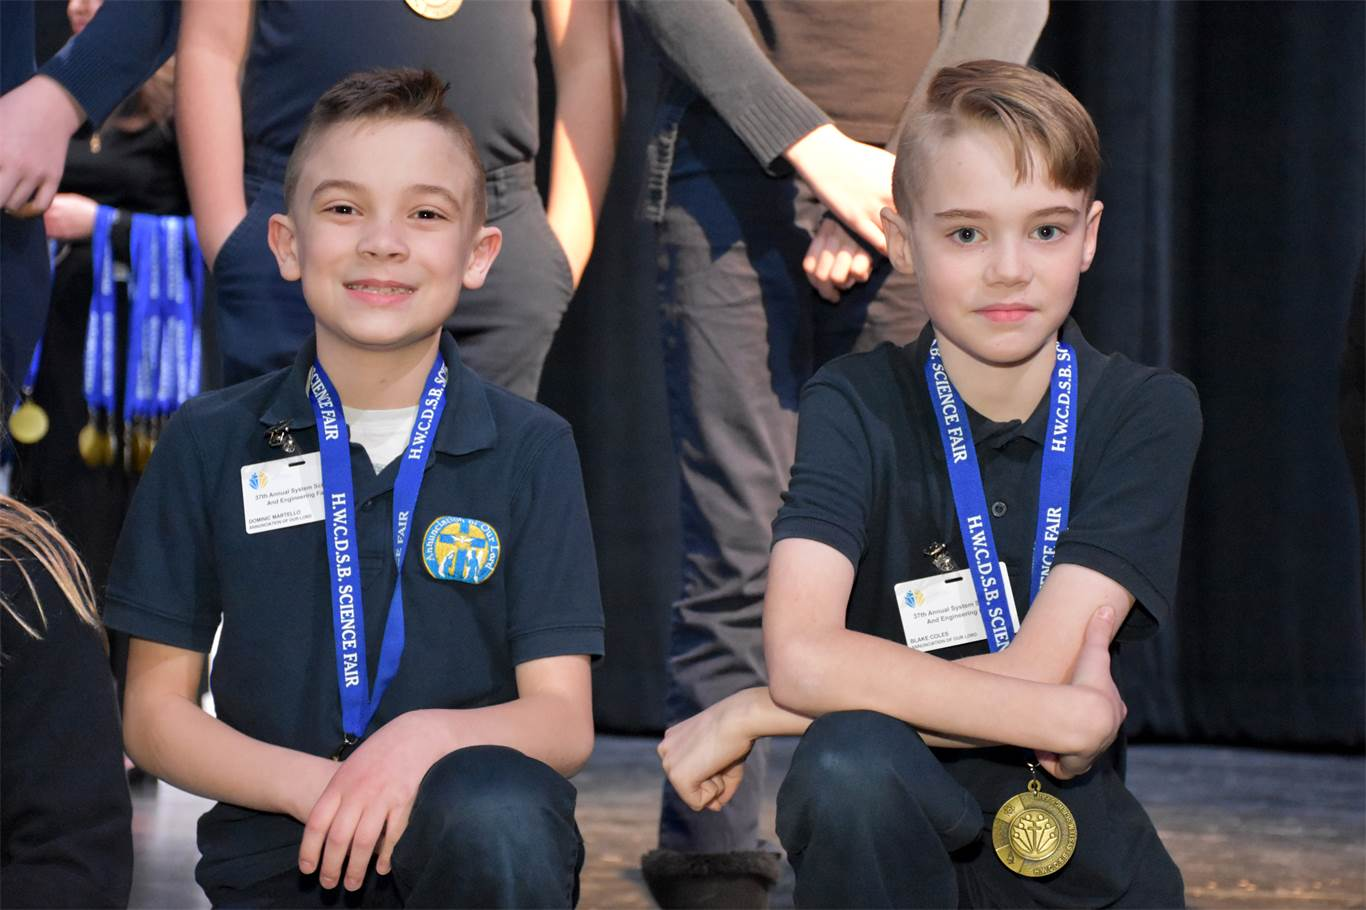 Awards ceremony recognizes science achievements